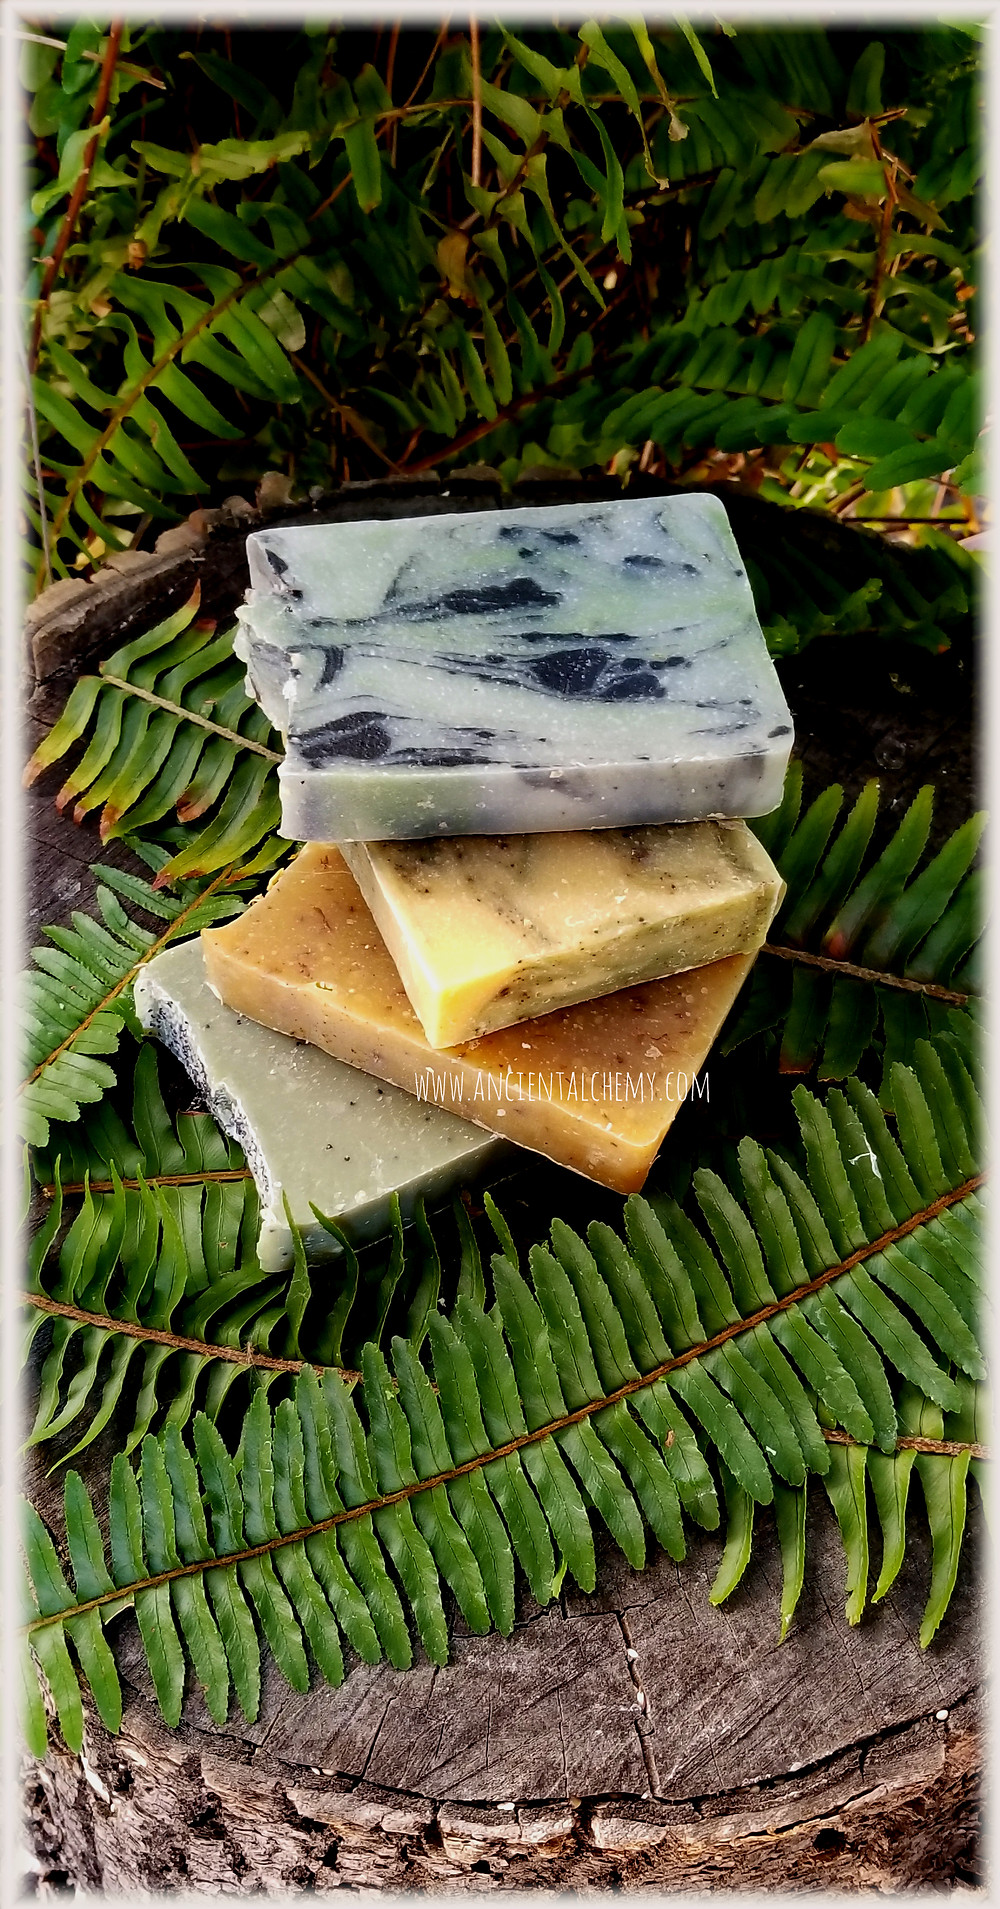 Ancient Alchemy Handmade Soaps